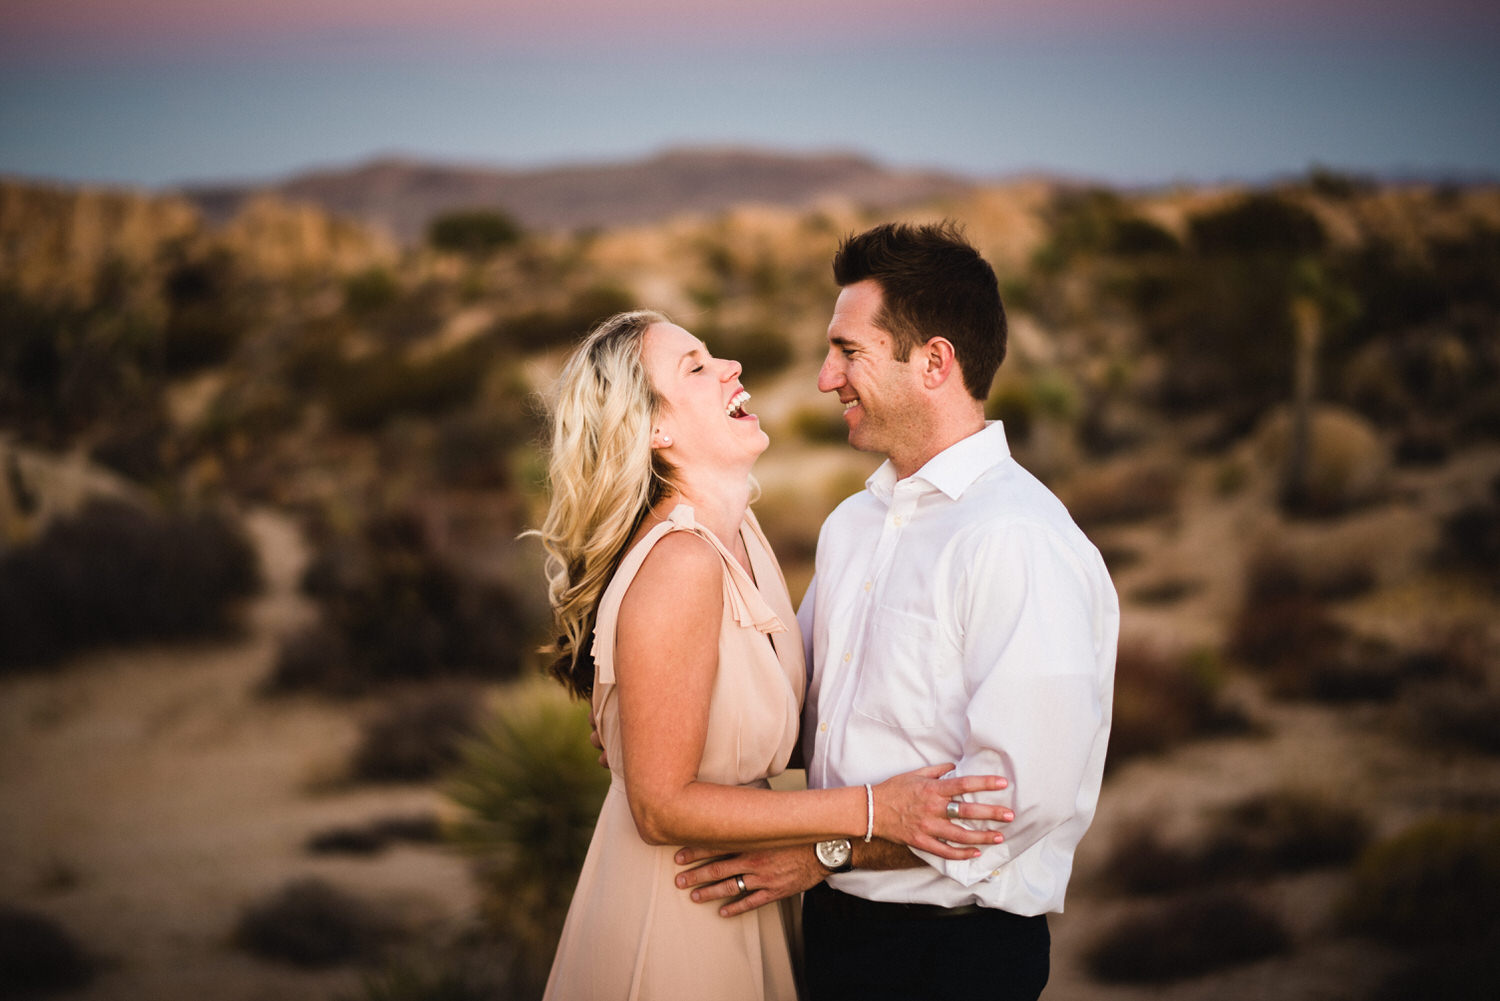 Desert engagement and couple's portrait session in Tucson, Arizona